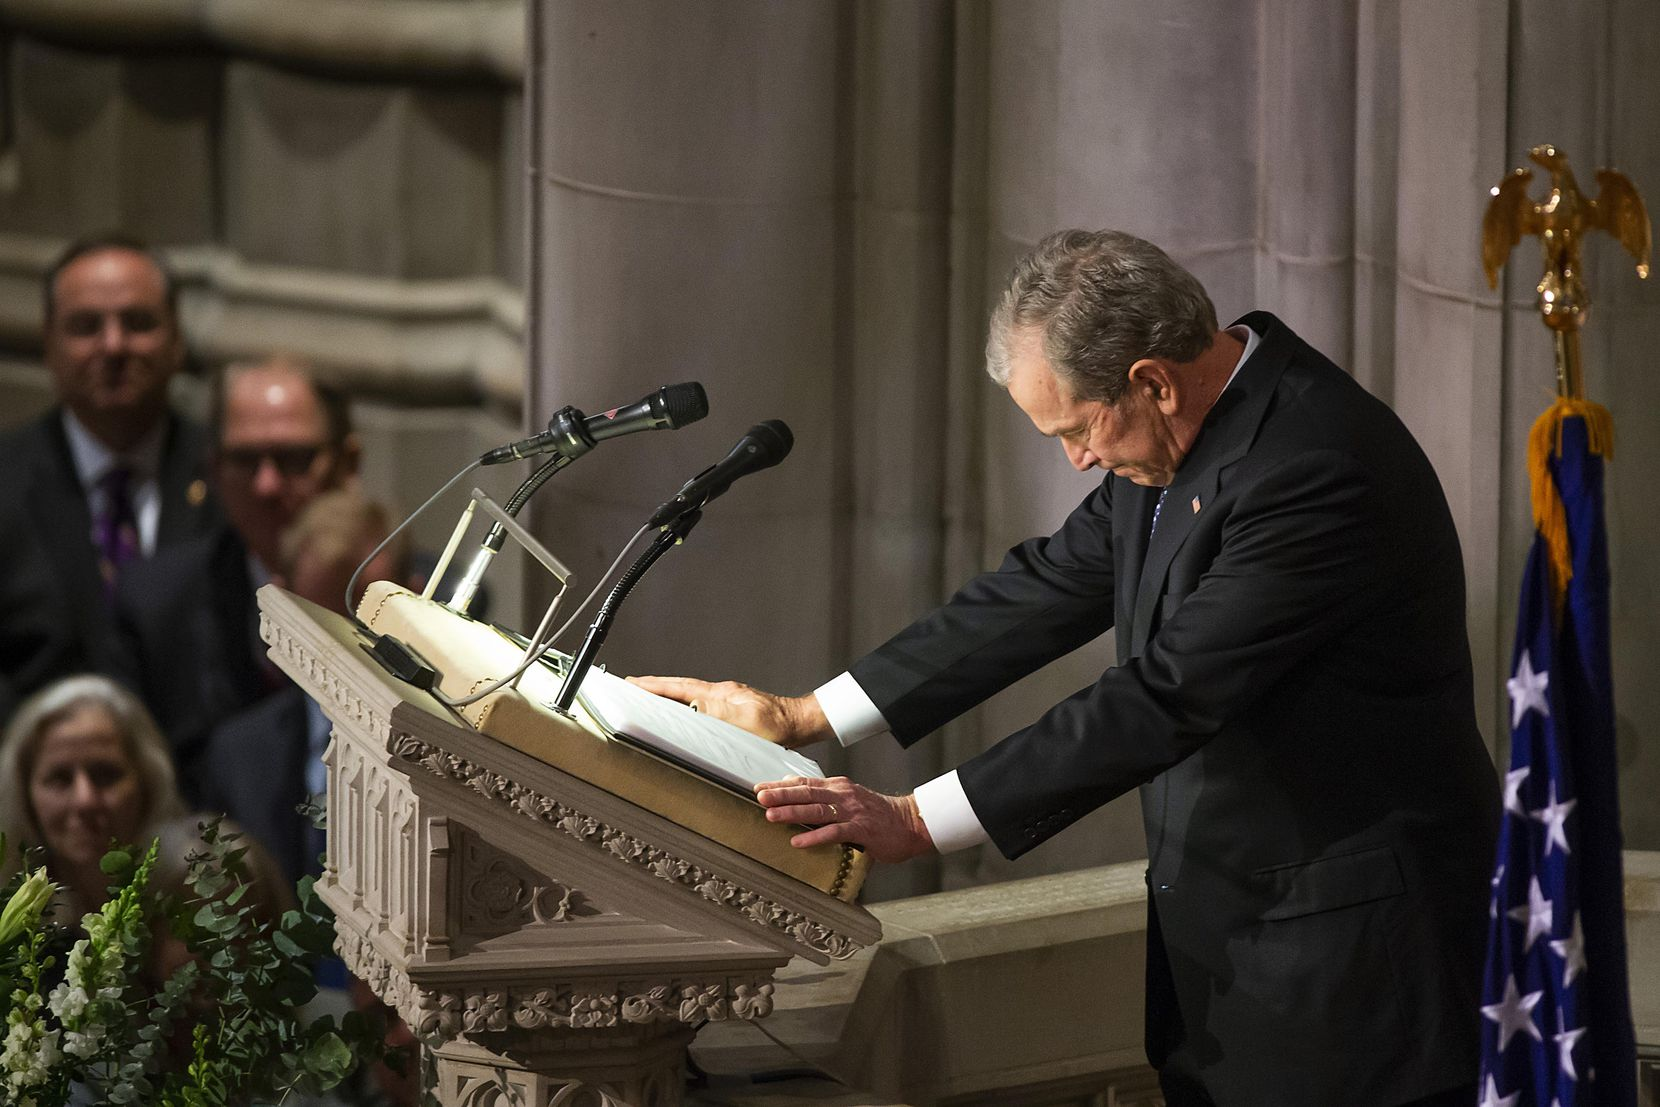 Former President George W. Bush composes himself as he delivers a eulogy during the State Funeral for his father George H.W. Bush, the 41st President of the United States, at the Washington National Cathedral on Wednesday, Dec. 5, 2018, in Washington. (Smiley N. Pool/The Dallas Morning News)